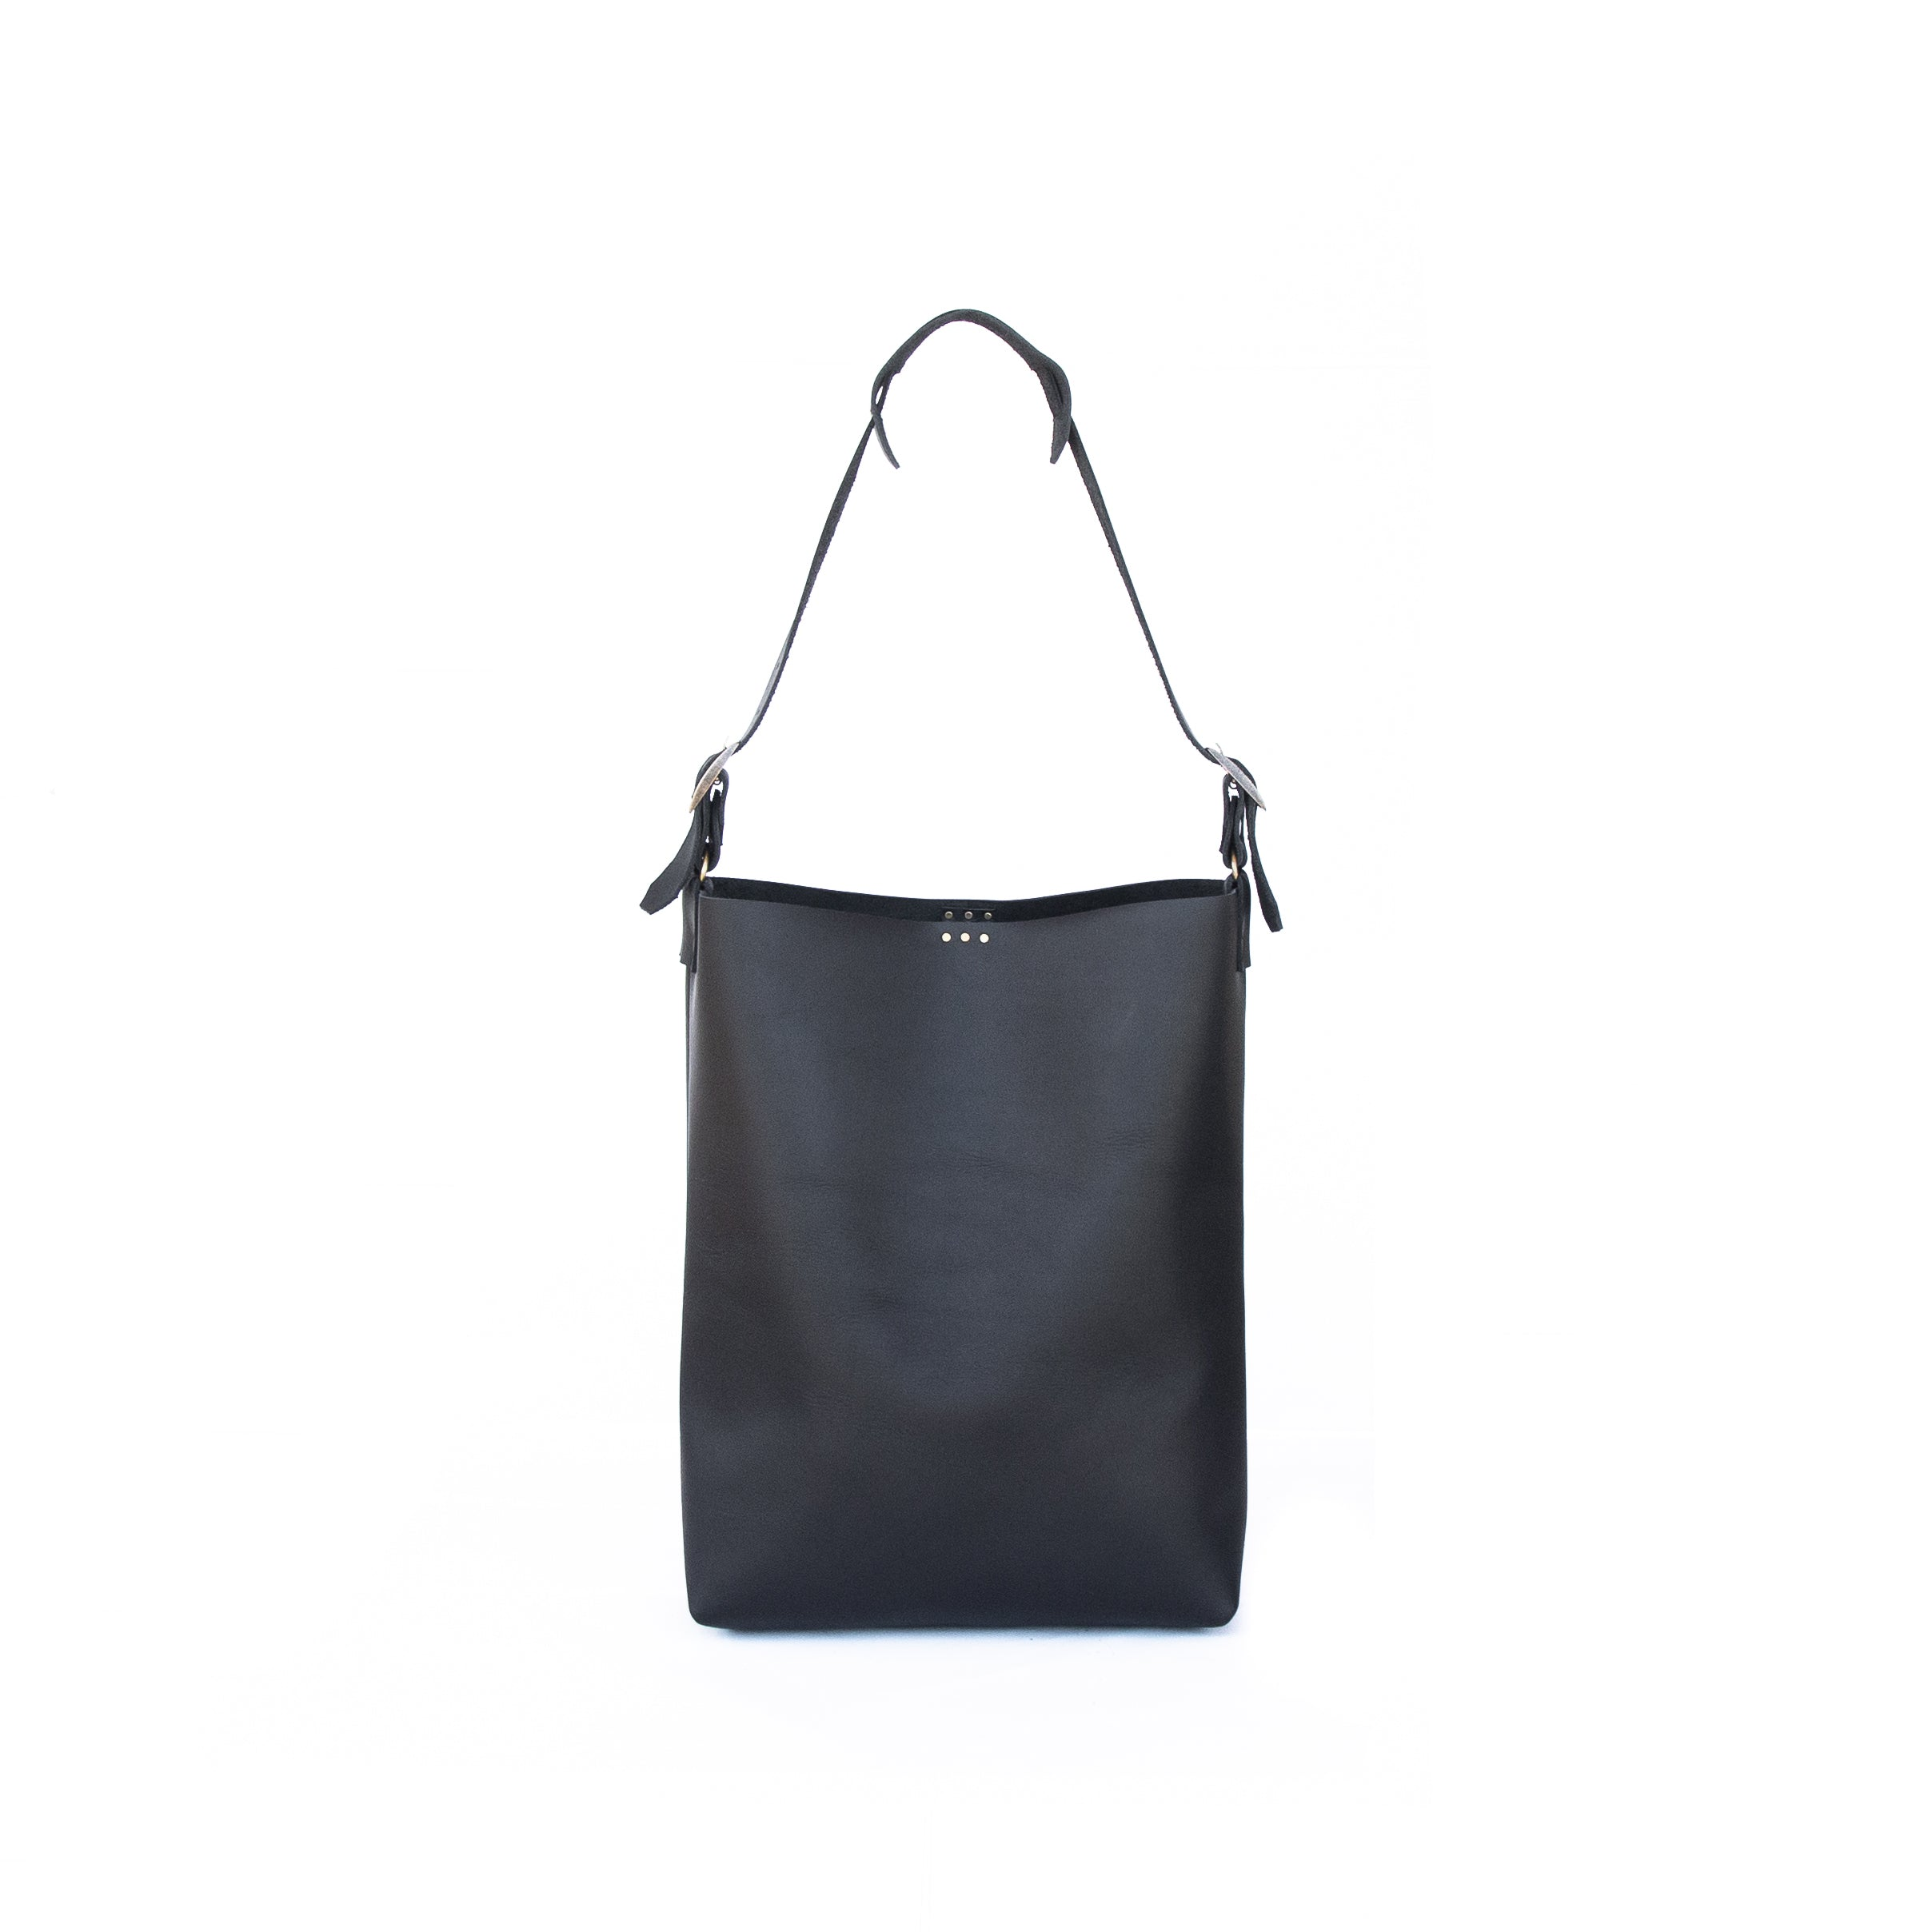 26332e49c SELECTED Lady Bag in Black Leather - handcrafted by Market Canvas Leather  in Tofino, BC,